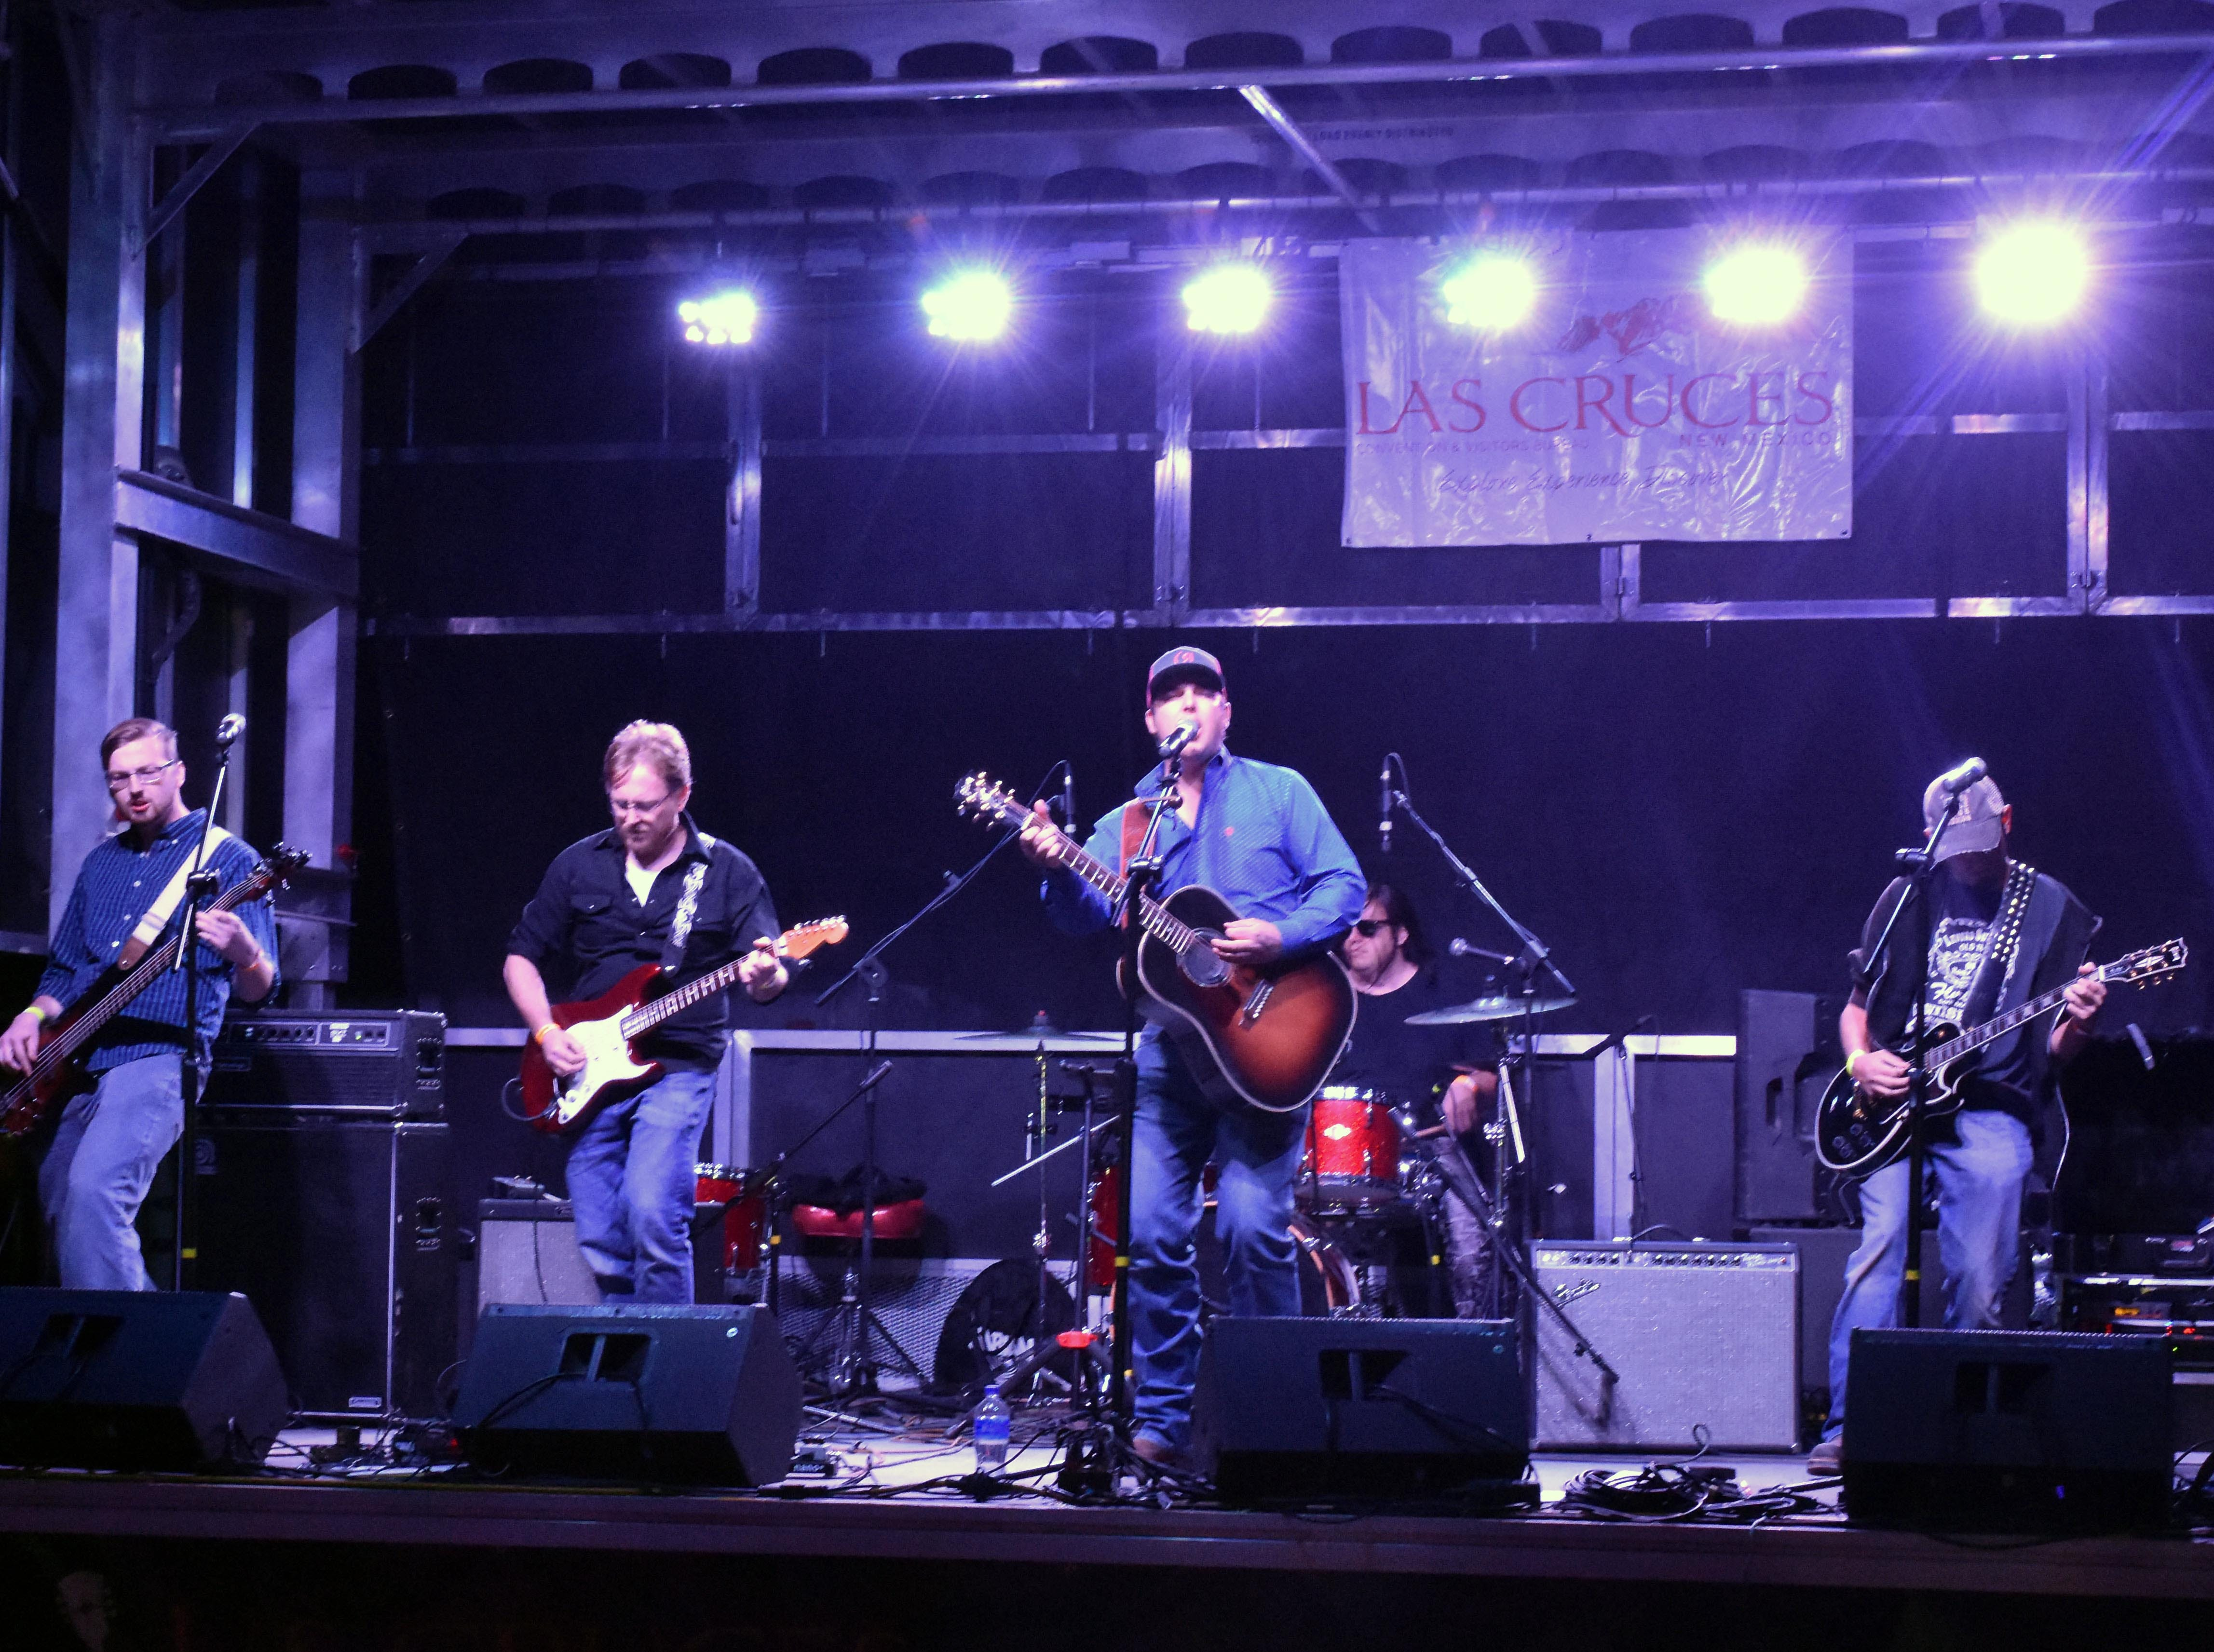 The Tell Runyan Band takes the stage at the Las Cruces Country Music Festival on Saturday, Oct. 20, 2018.